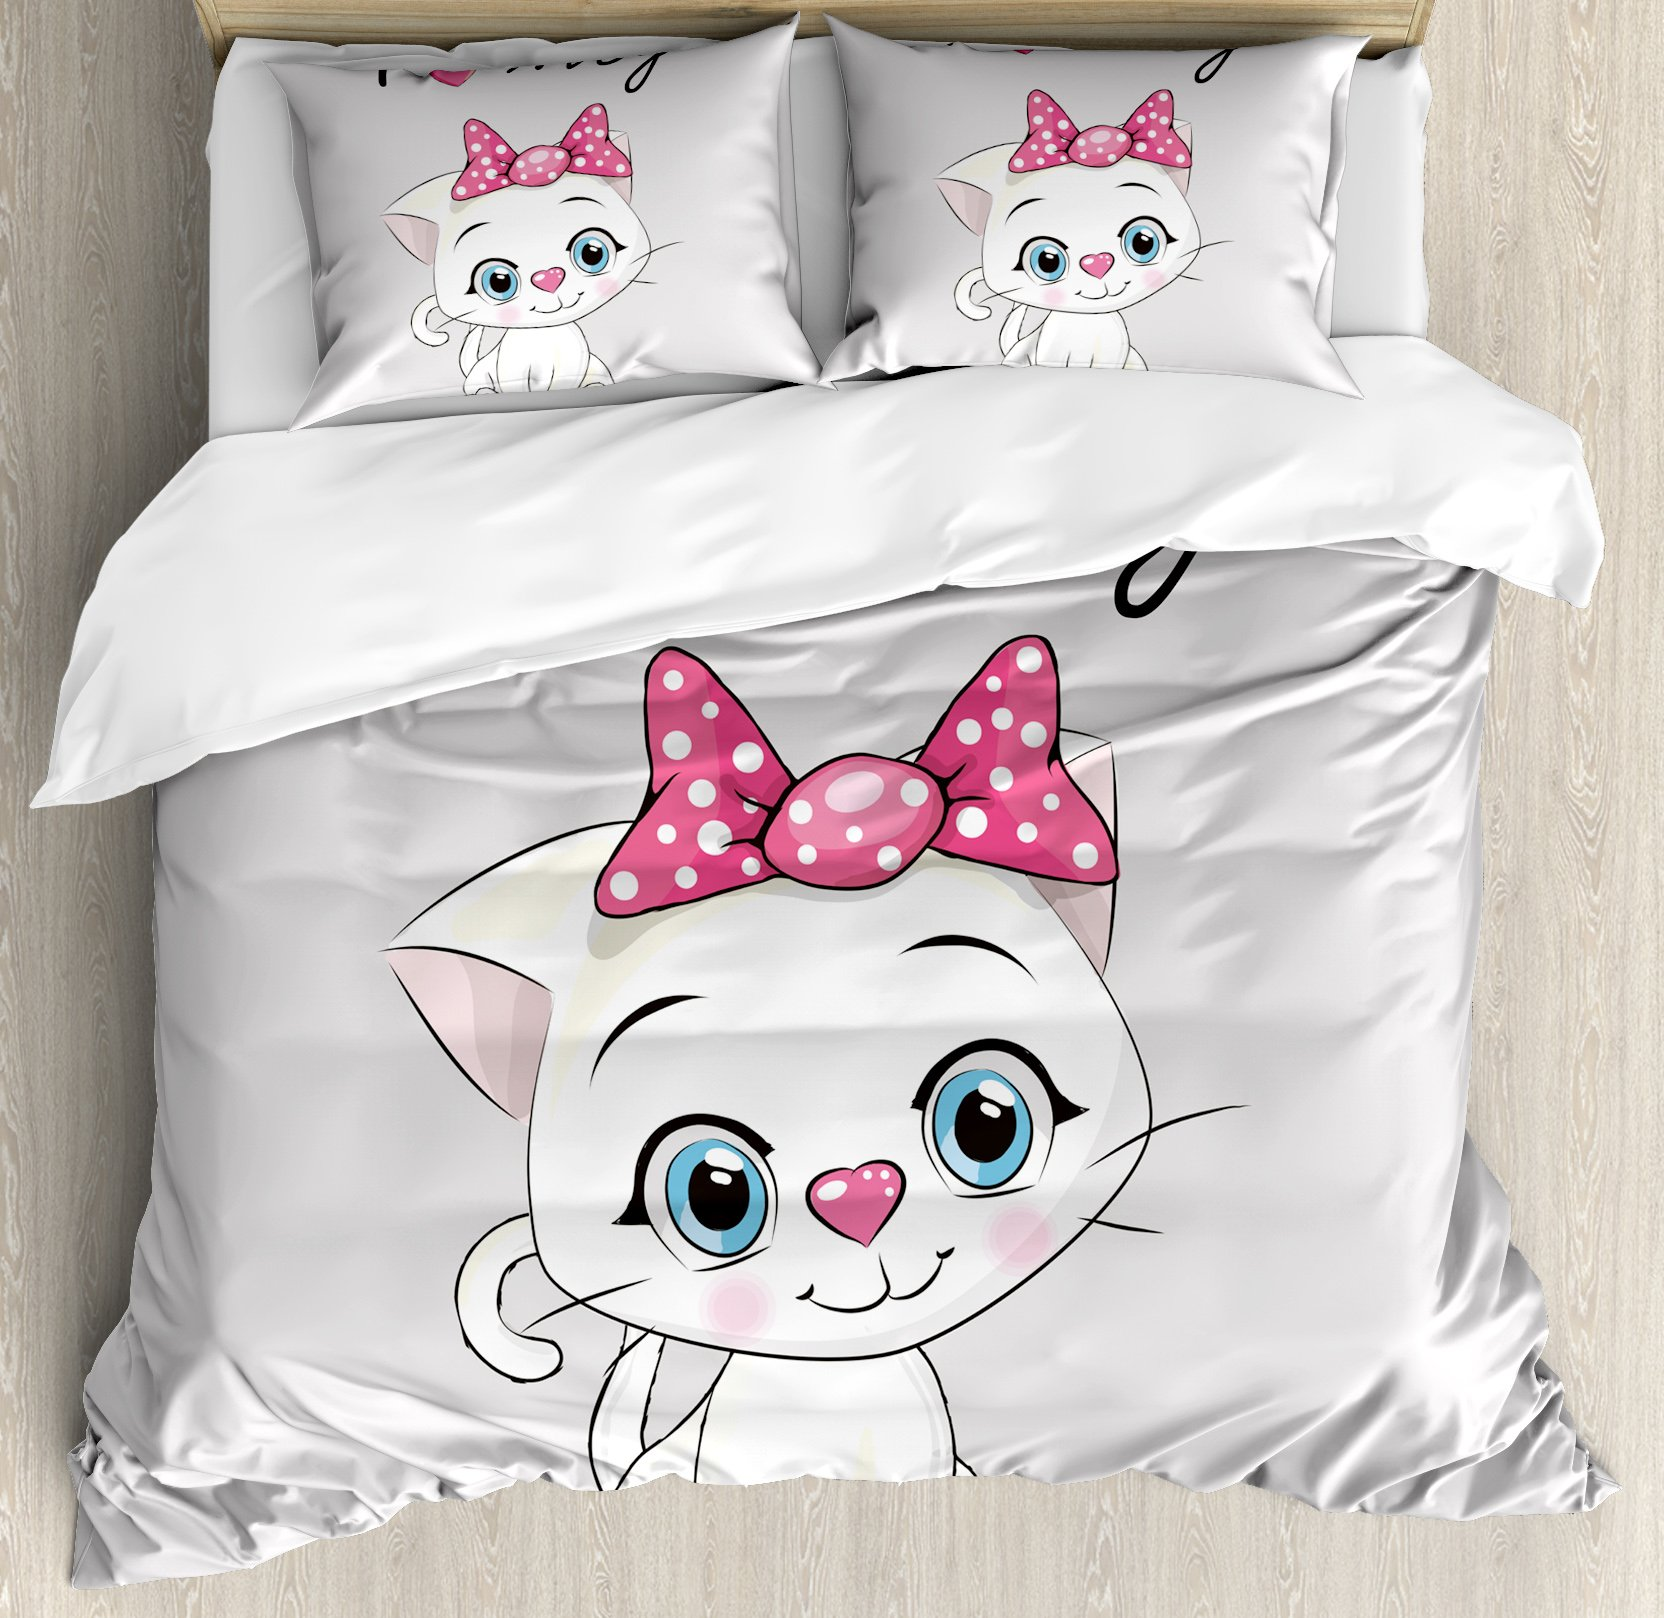 Kitten Queen Size Duvet Cover Set by Ambesonne, Cute Cartoon Domestic White Cat Pink Cheeks Fluffy I Love My Pet Themed Print, Decorative 3 Piece Bedding Set with 2 Pillow Shams, Grey White Pink